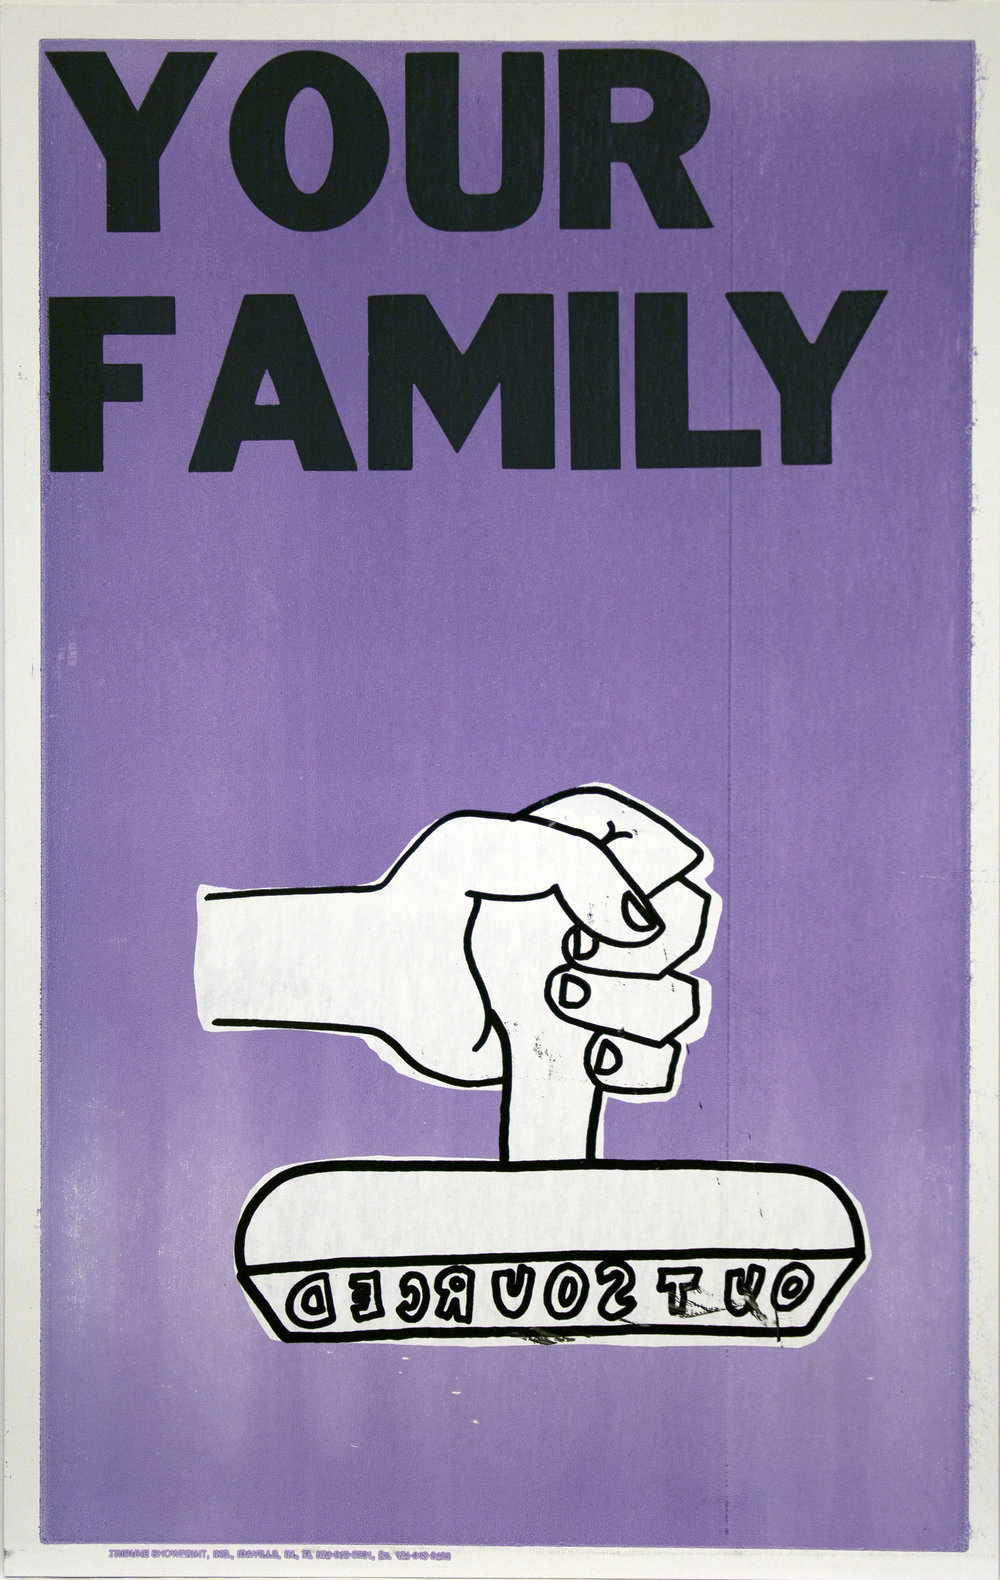 Christopher Michlig and Jan Tumlir,  It's Official 1: Outsourced (Your Family) , 2017. Silkscreen and letterpress on poster board, 14 x 22 inches